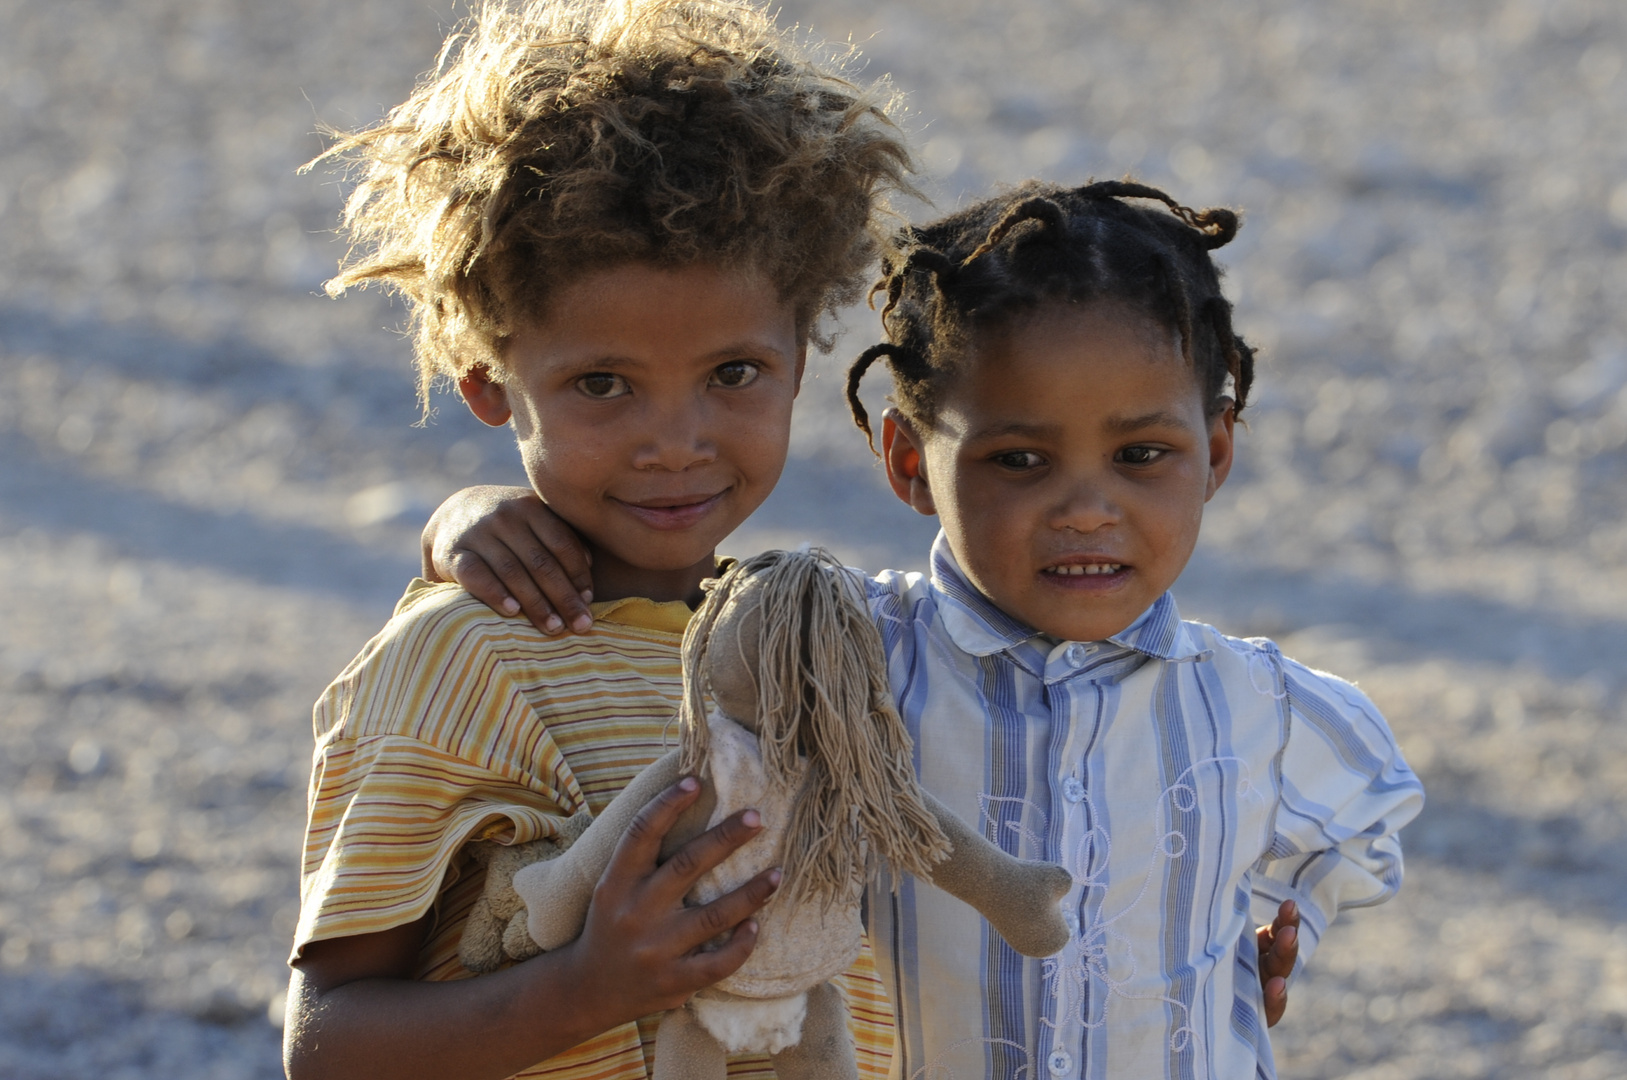 Bushmengirls in Namibia